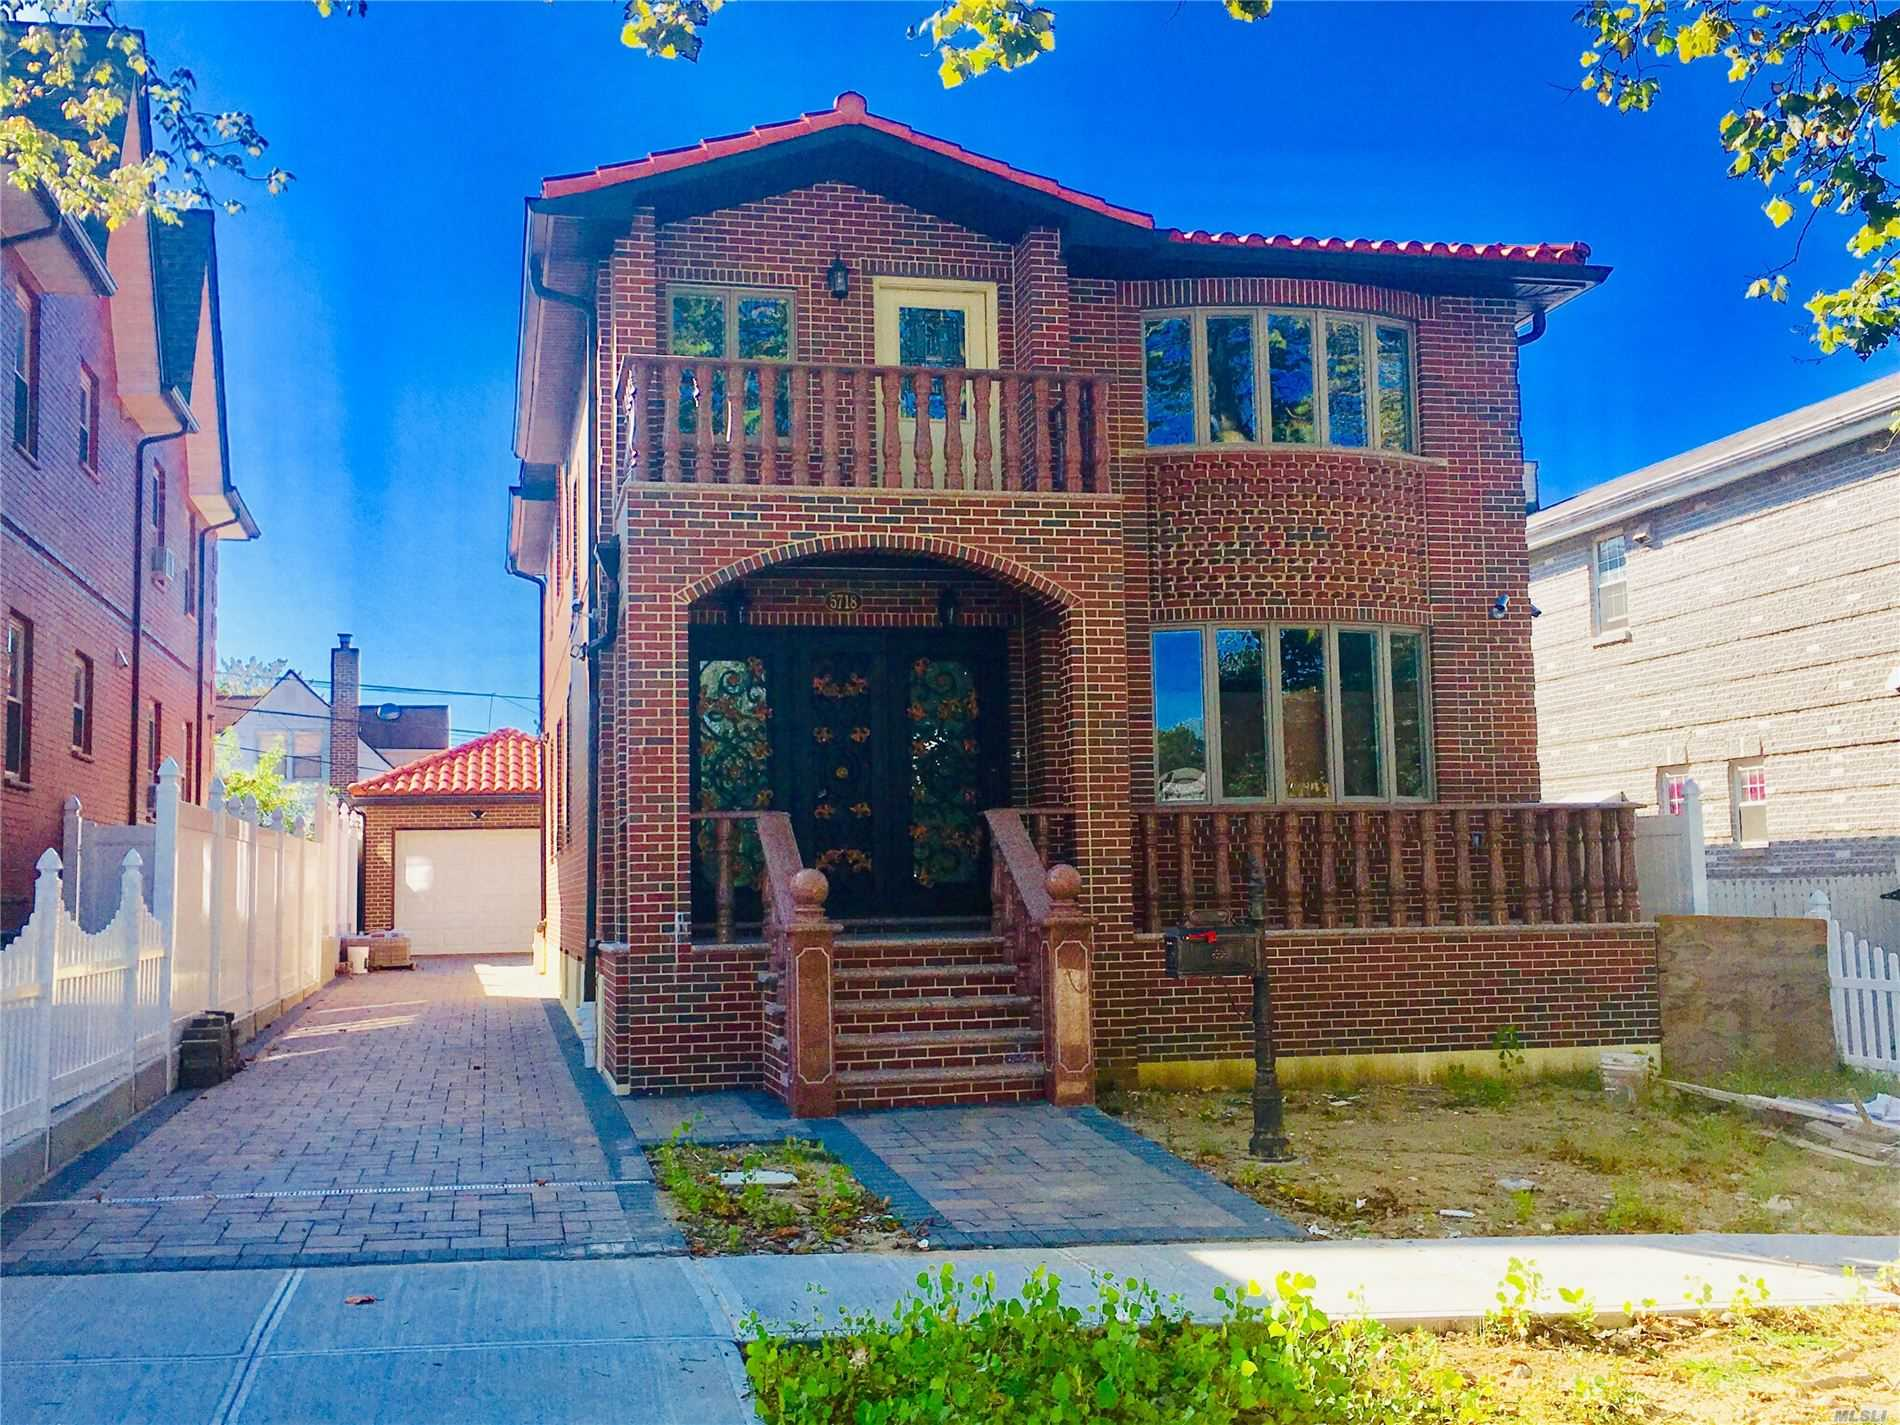 Property for sale at 57-18 159th Street, Flushing NY 11365, Flushing,  New York 11365